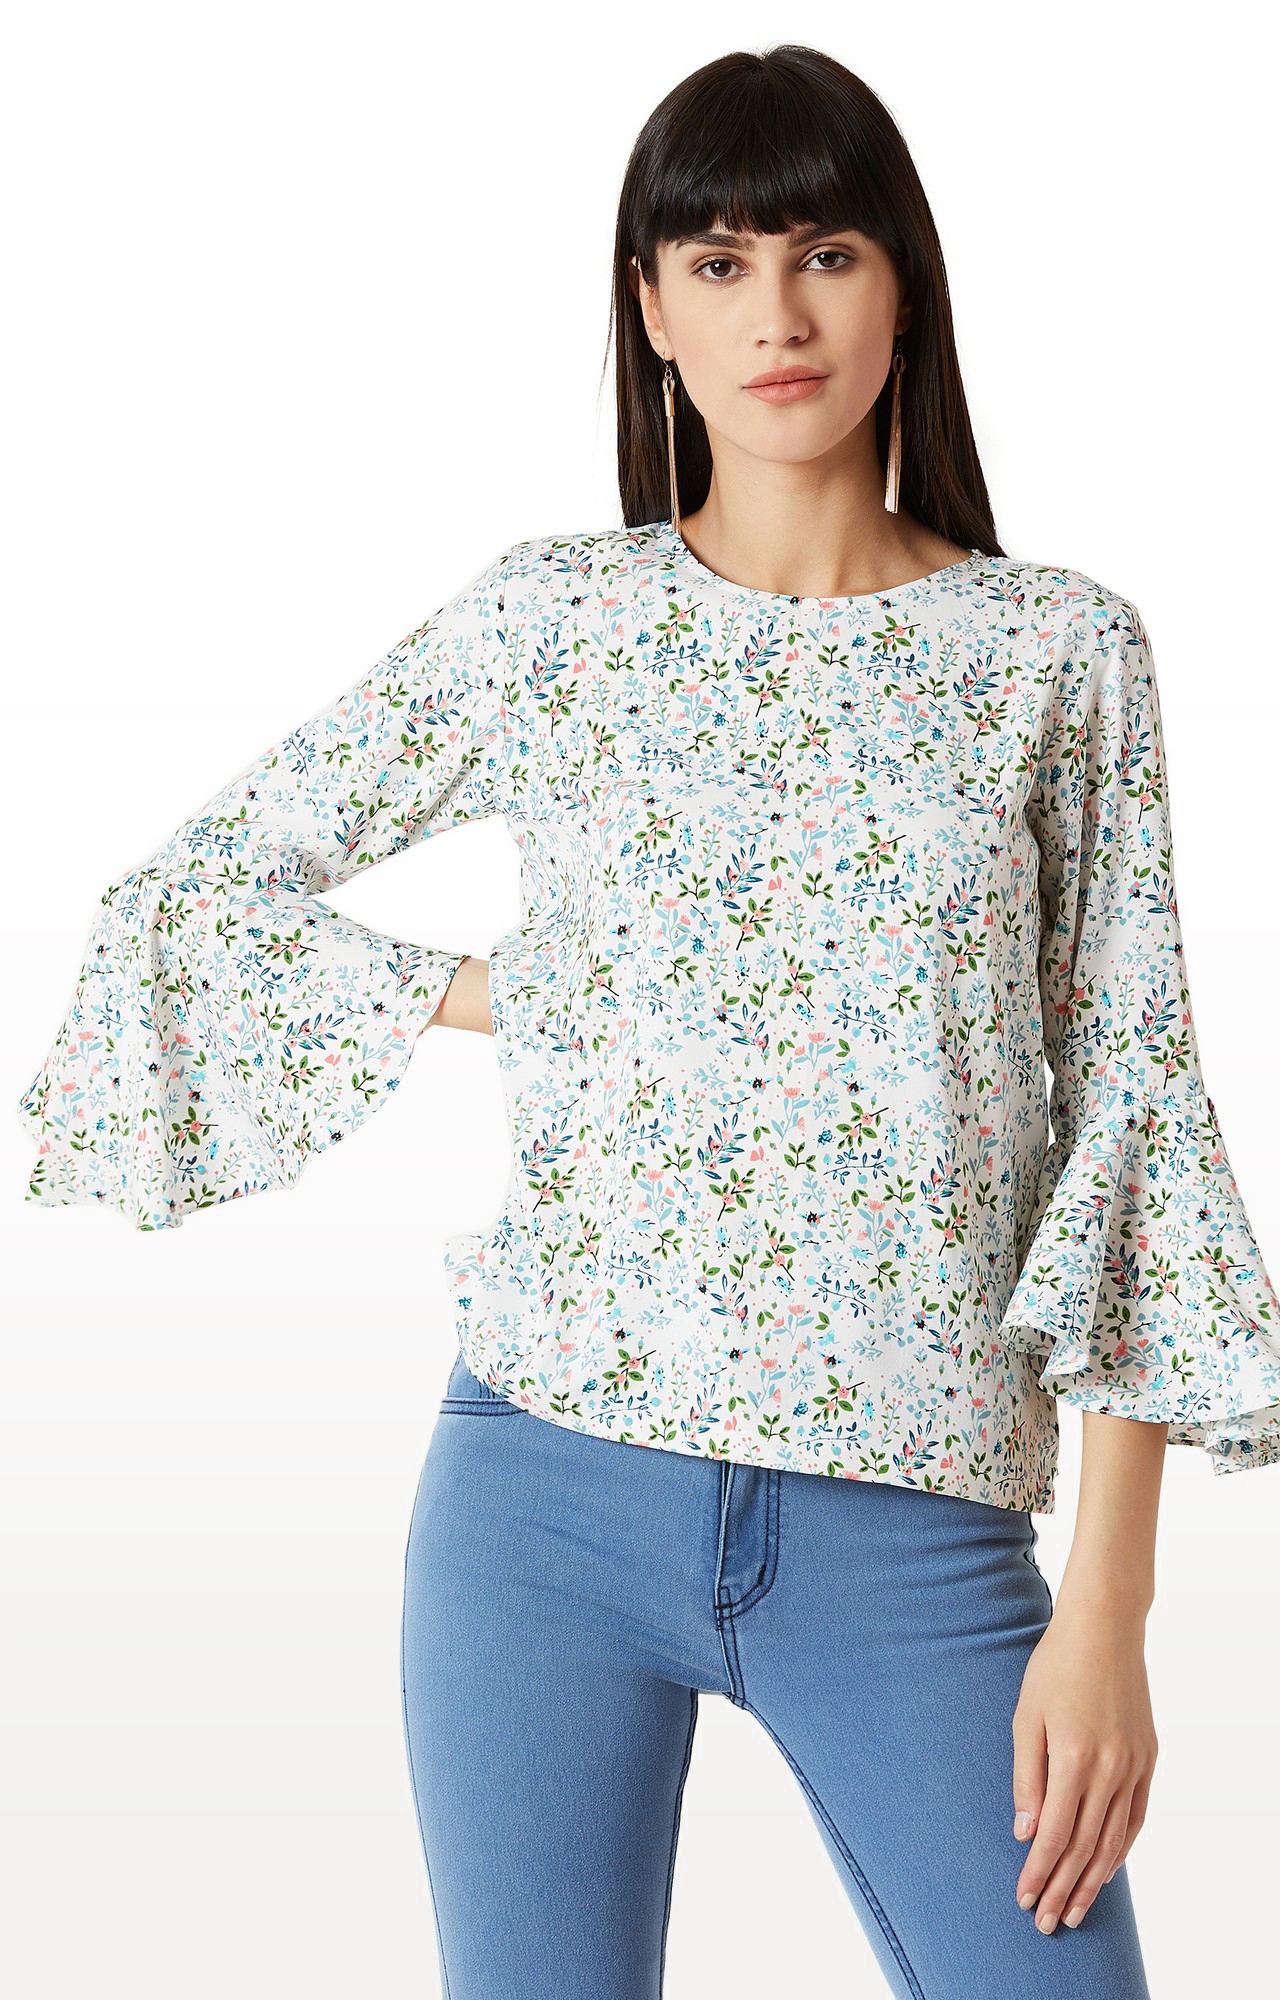 MISS CHASE | White and Blue Floral 3/4th Sleeve Ruffled Top